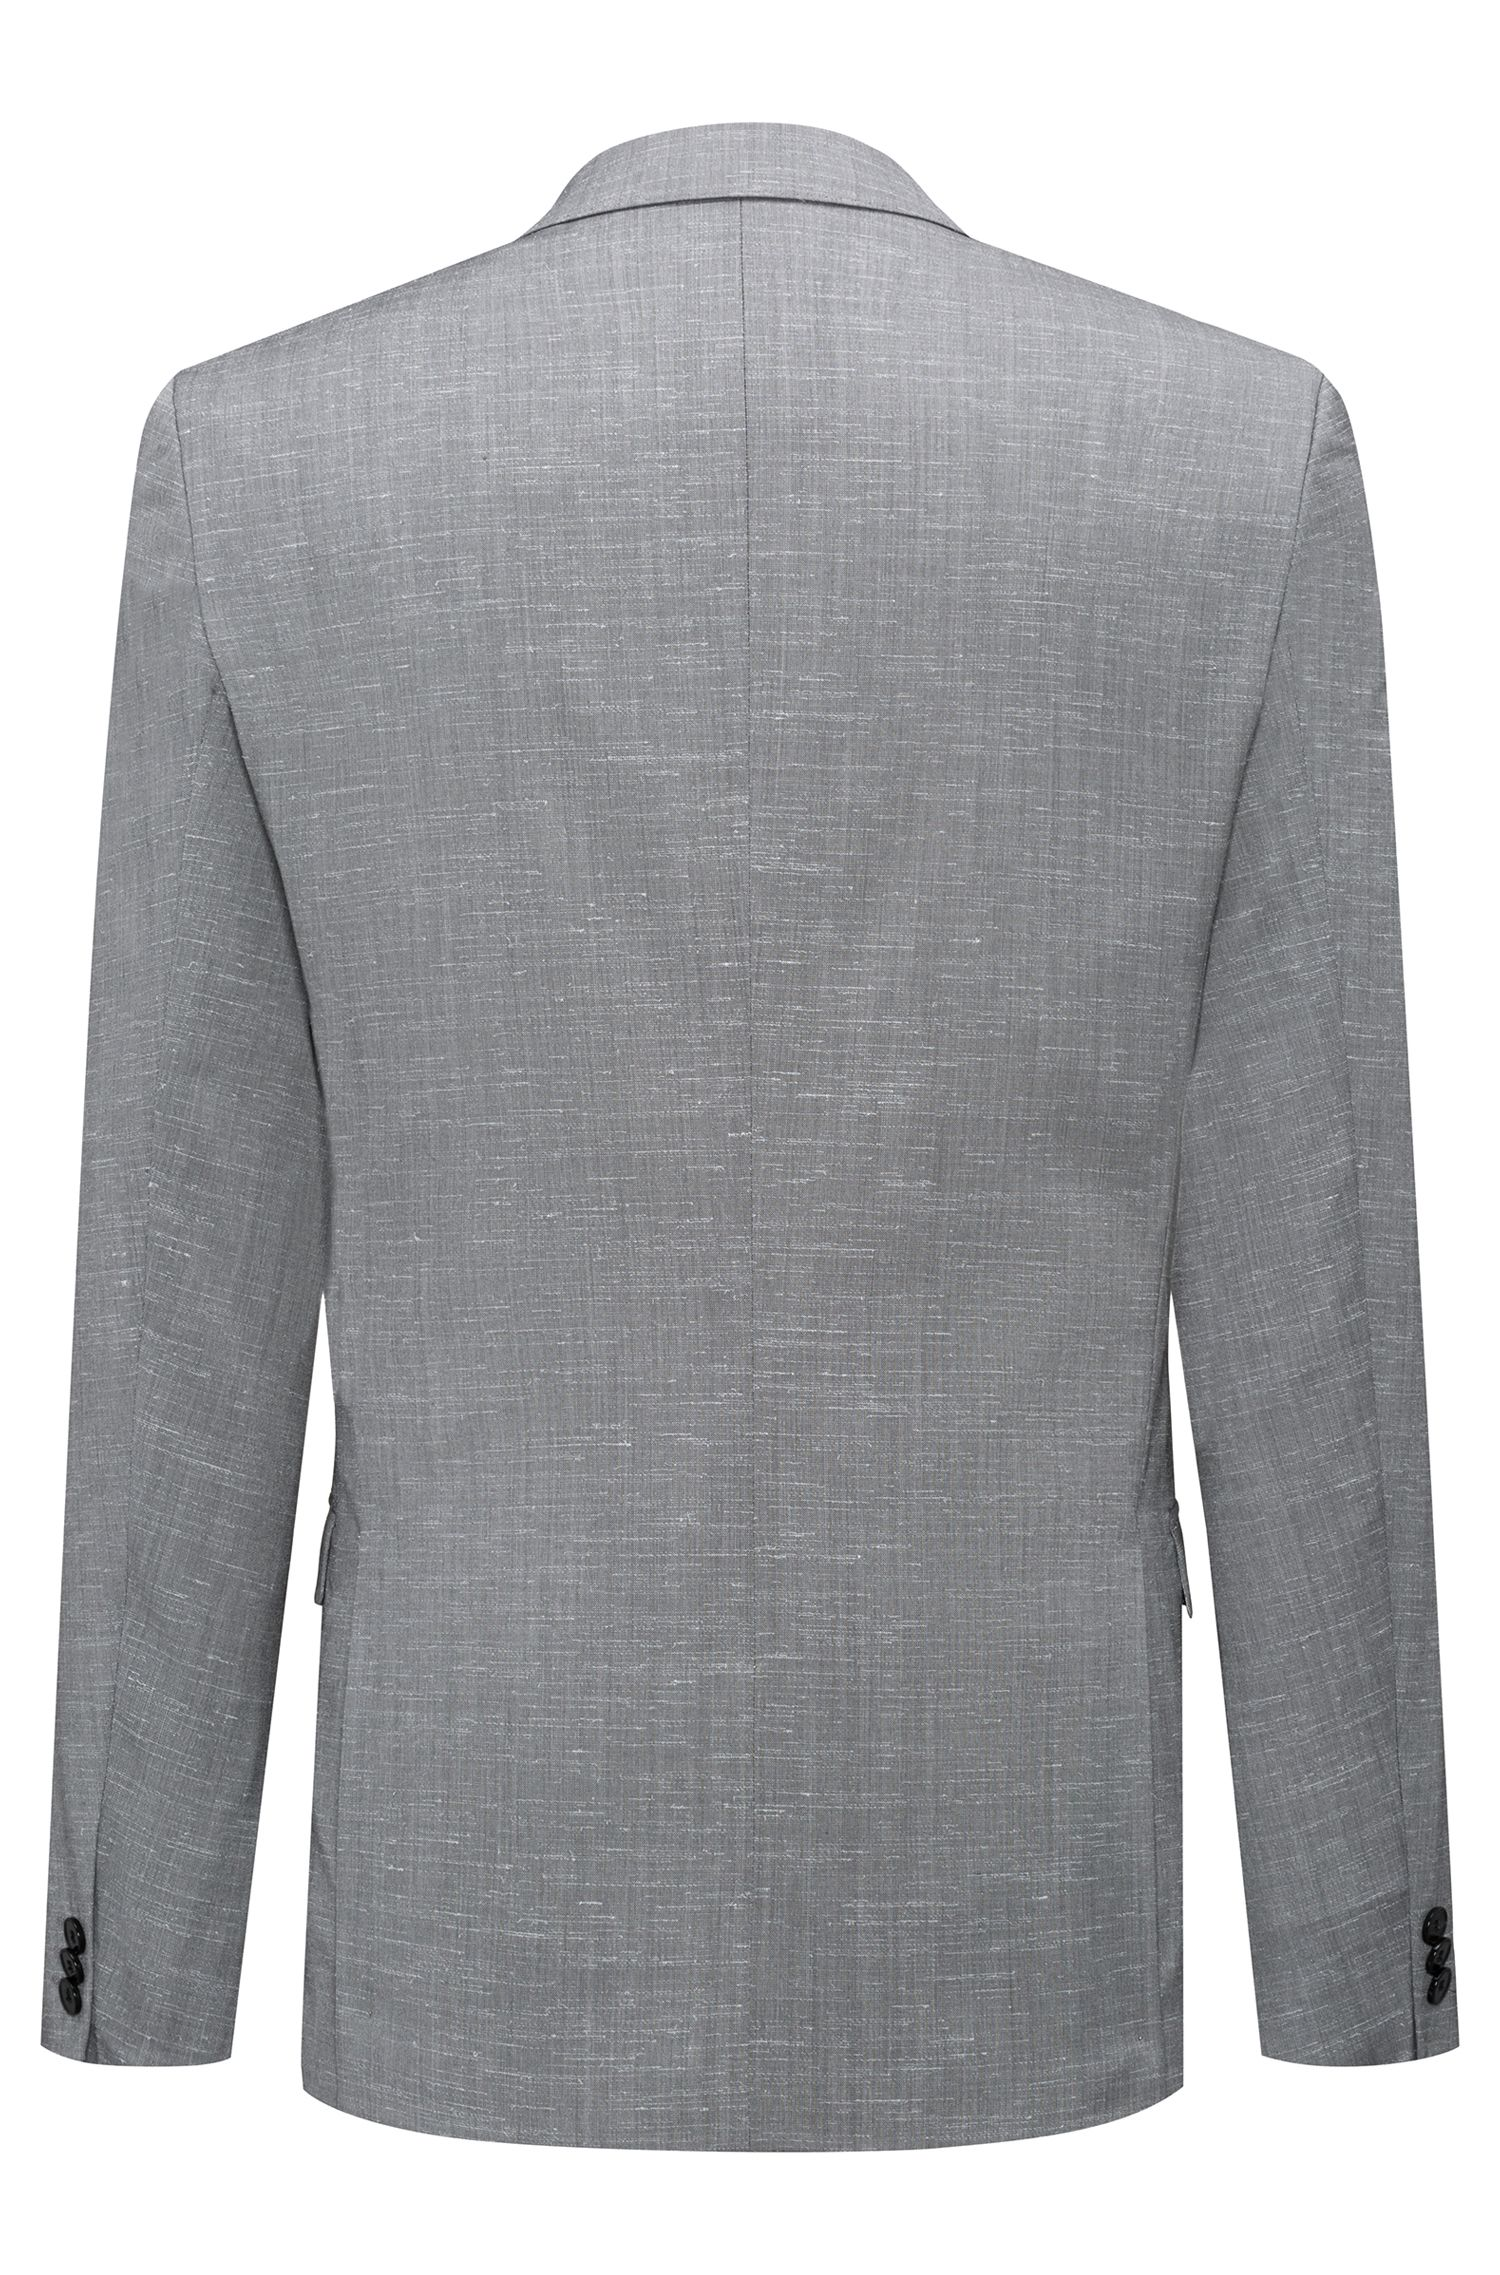 Italian Virgin Wool Suit, Extra-Slim Fit | Arti/Hesten